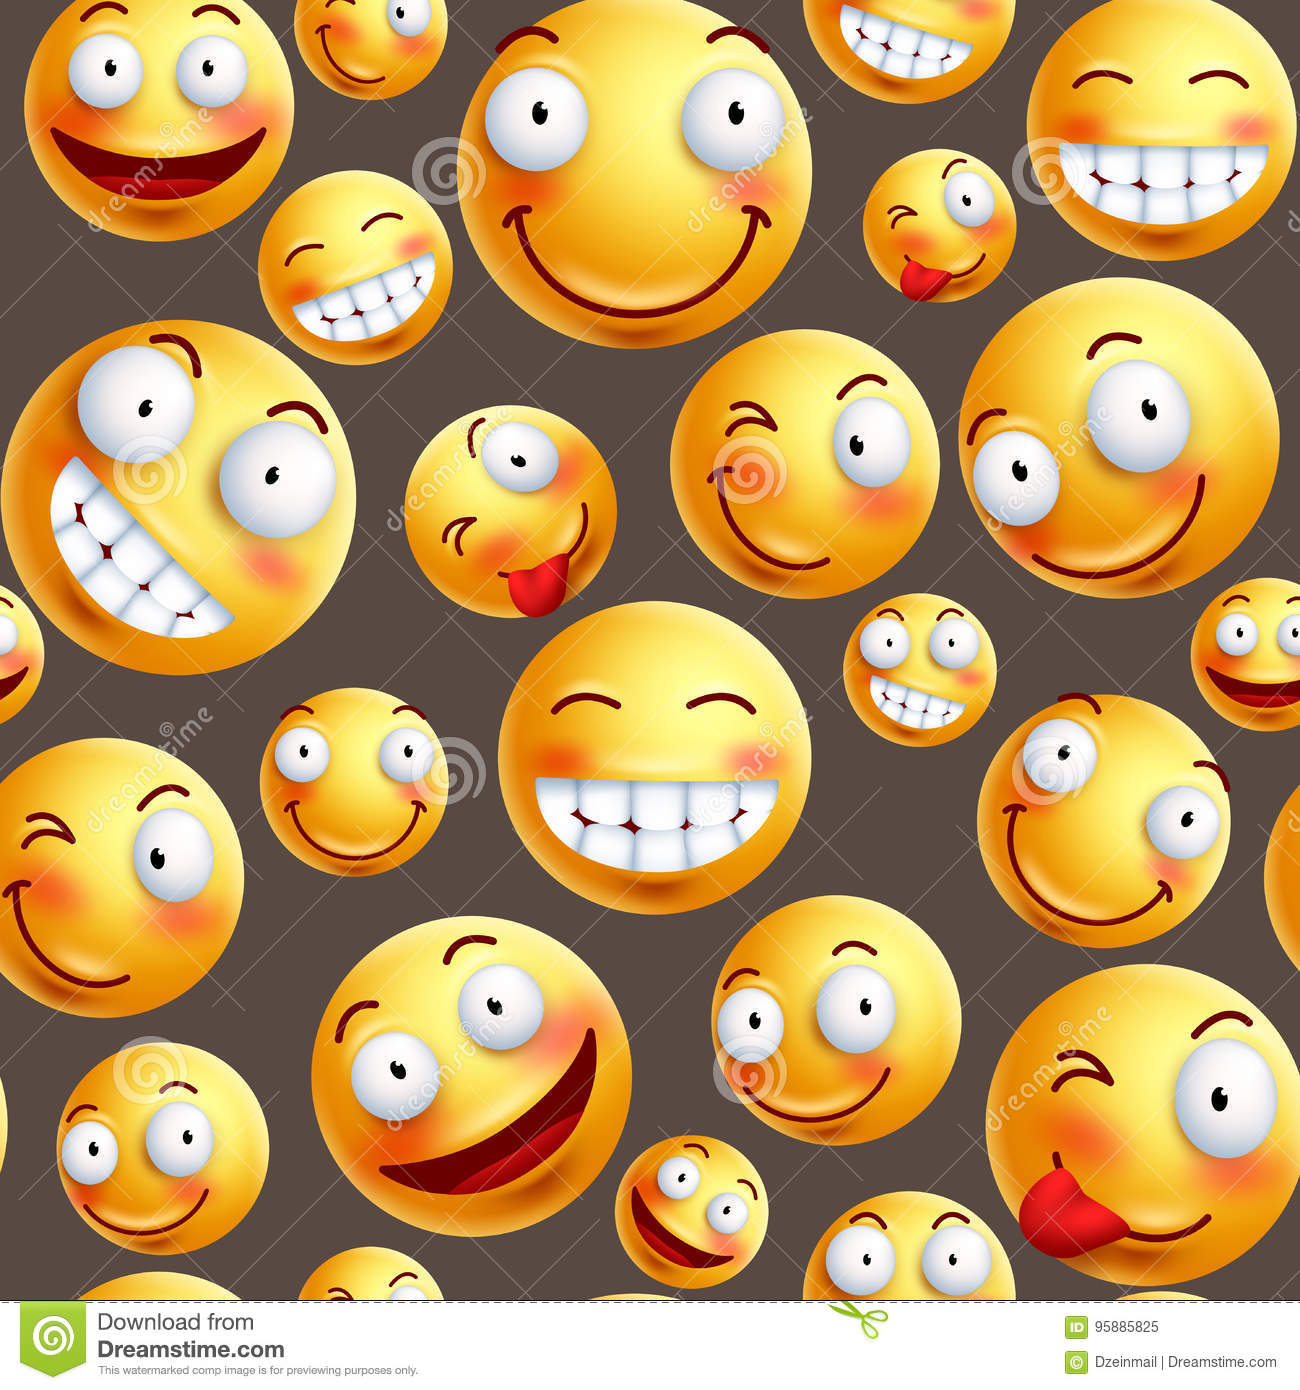 Smiley pattern vector background with continuous or seamless happy facial expressions